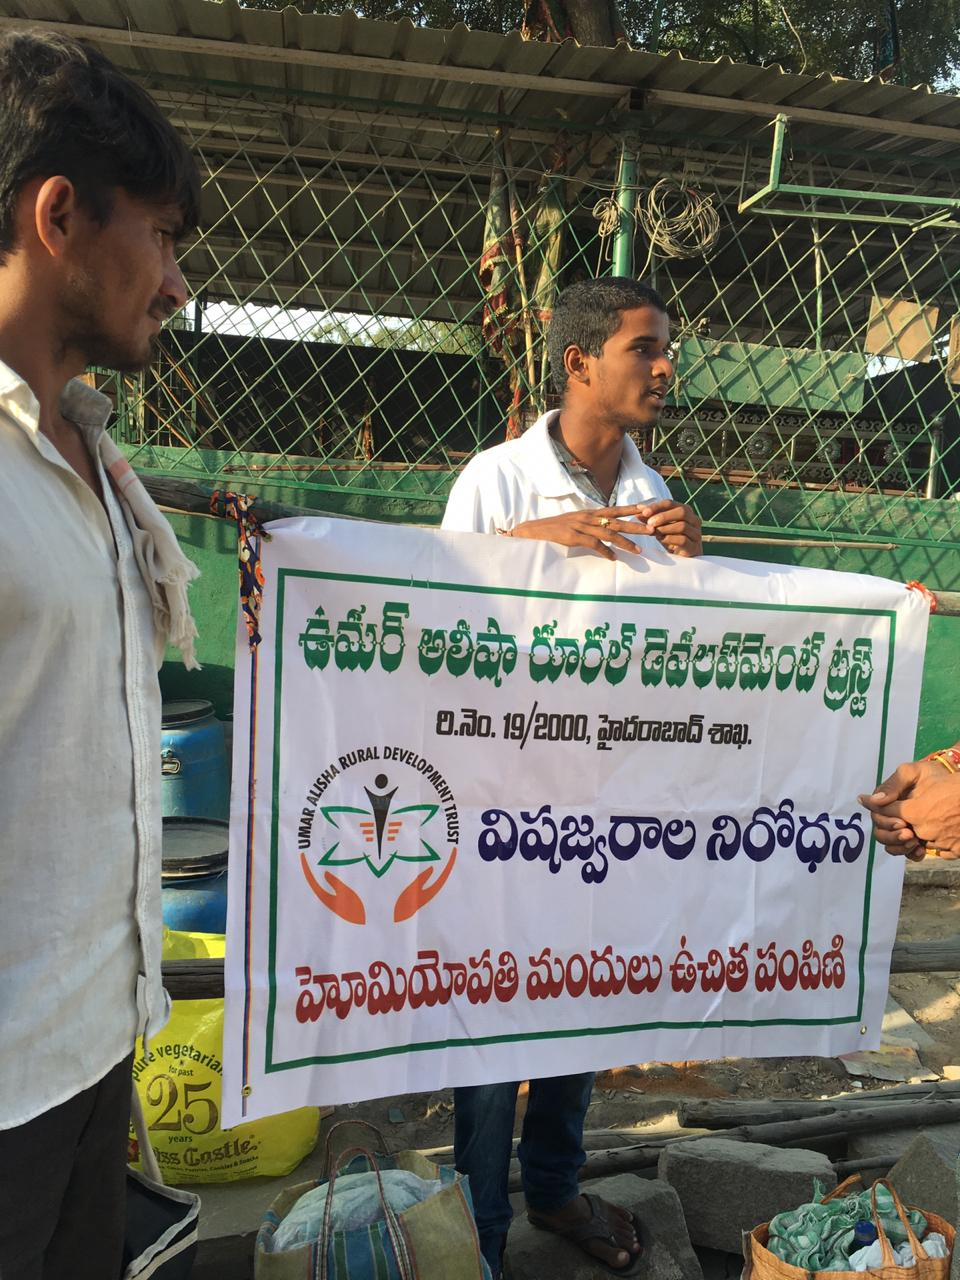 02-UARDT-FreeMedicalCamp-Hyderabad-06102019